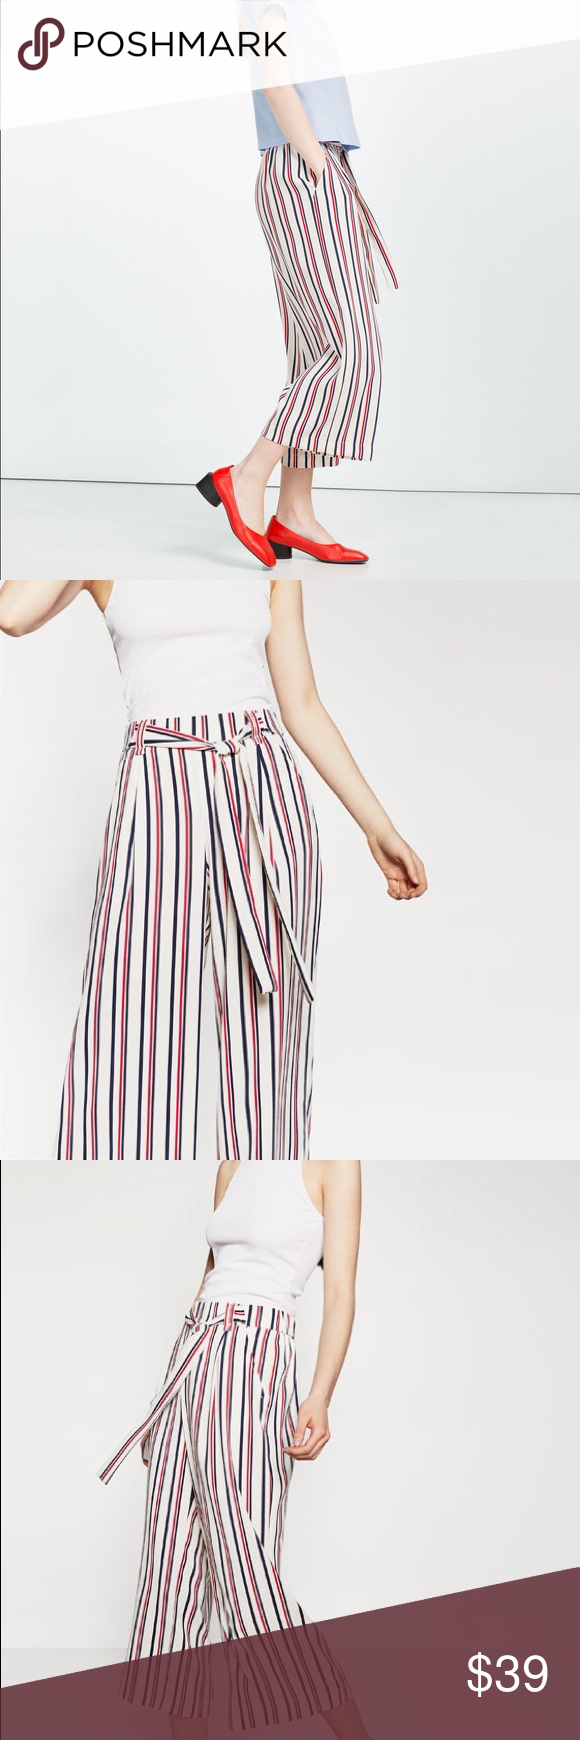 Zara Cropped Flowing Trousers Red Blue Striped S In excellent condition. Worn just one time. Zara Pants Trousers